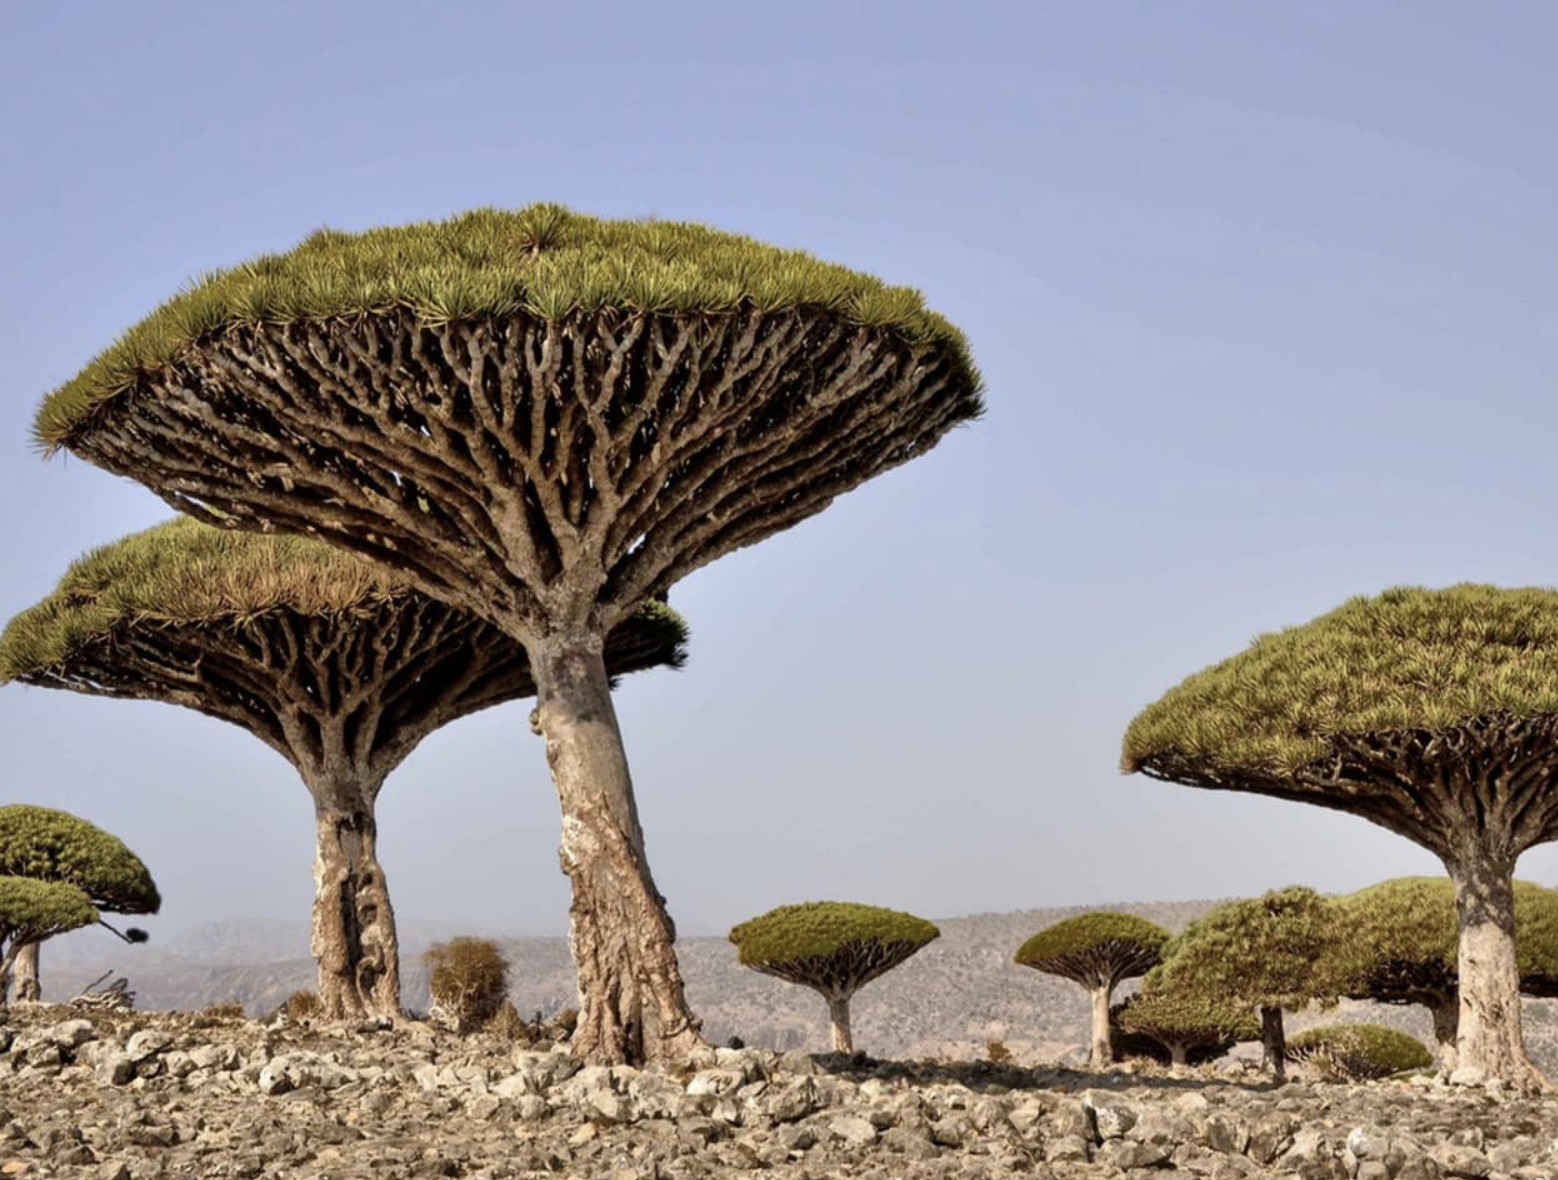 UAE's $110m aid helps Socotra overcome challenges, dire conditions - News